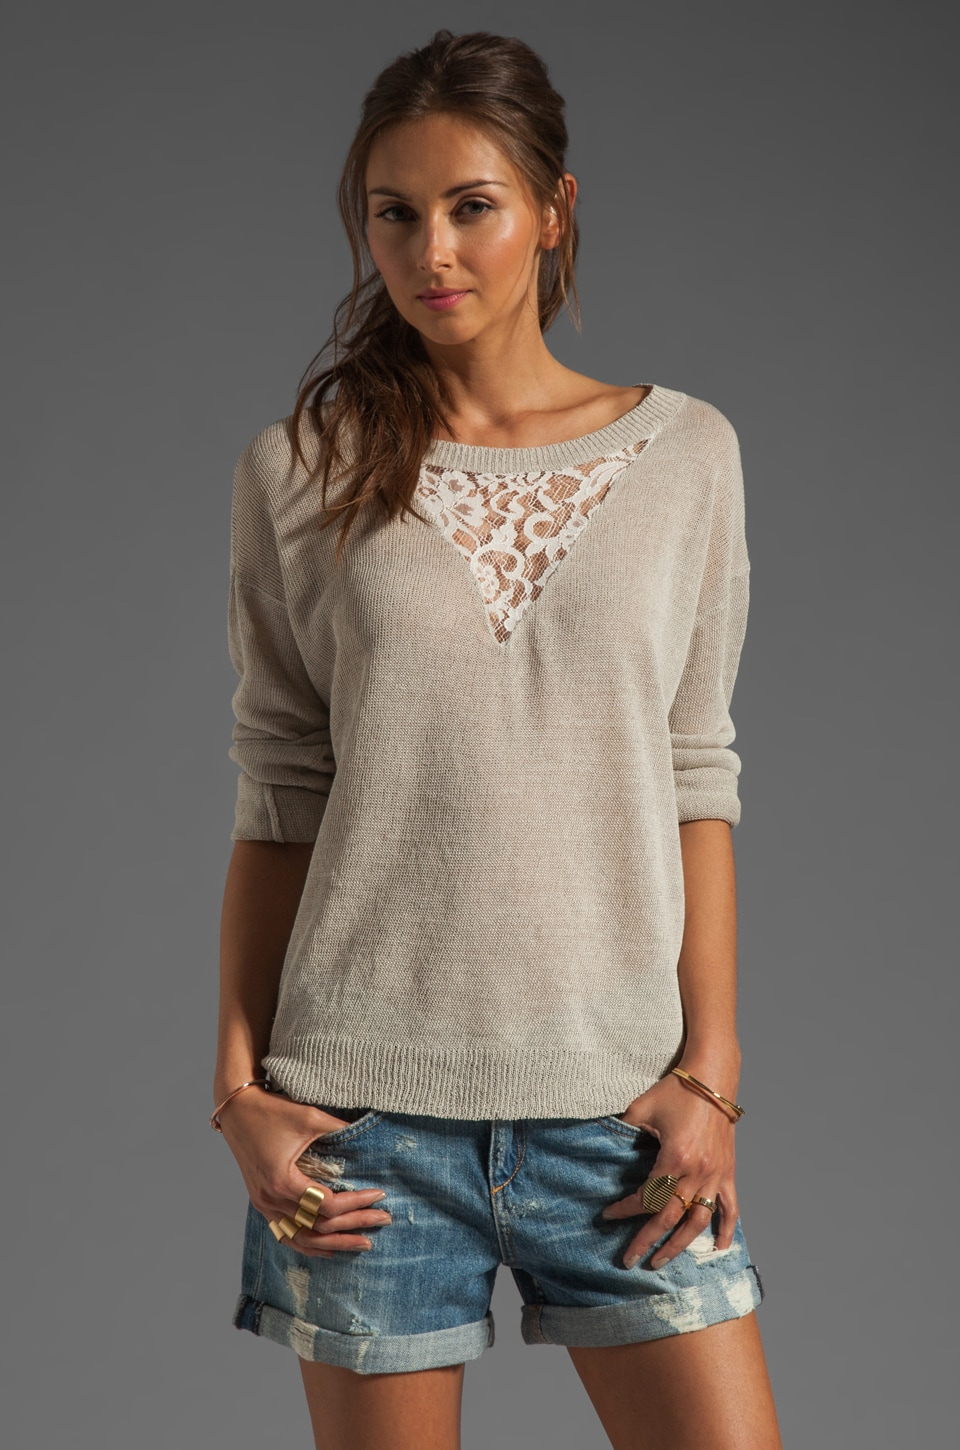 Haute Hippie Pullover Sweatshirt with Lace Inset in Oatmeal Heather